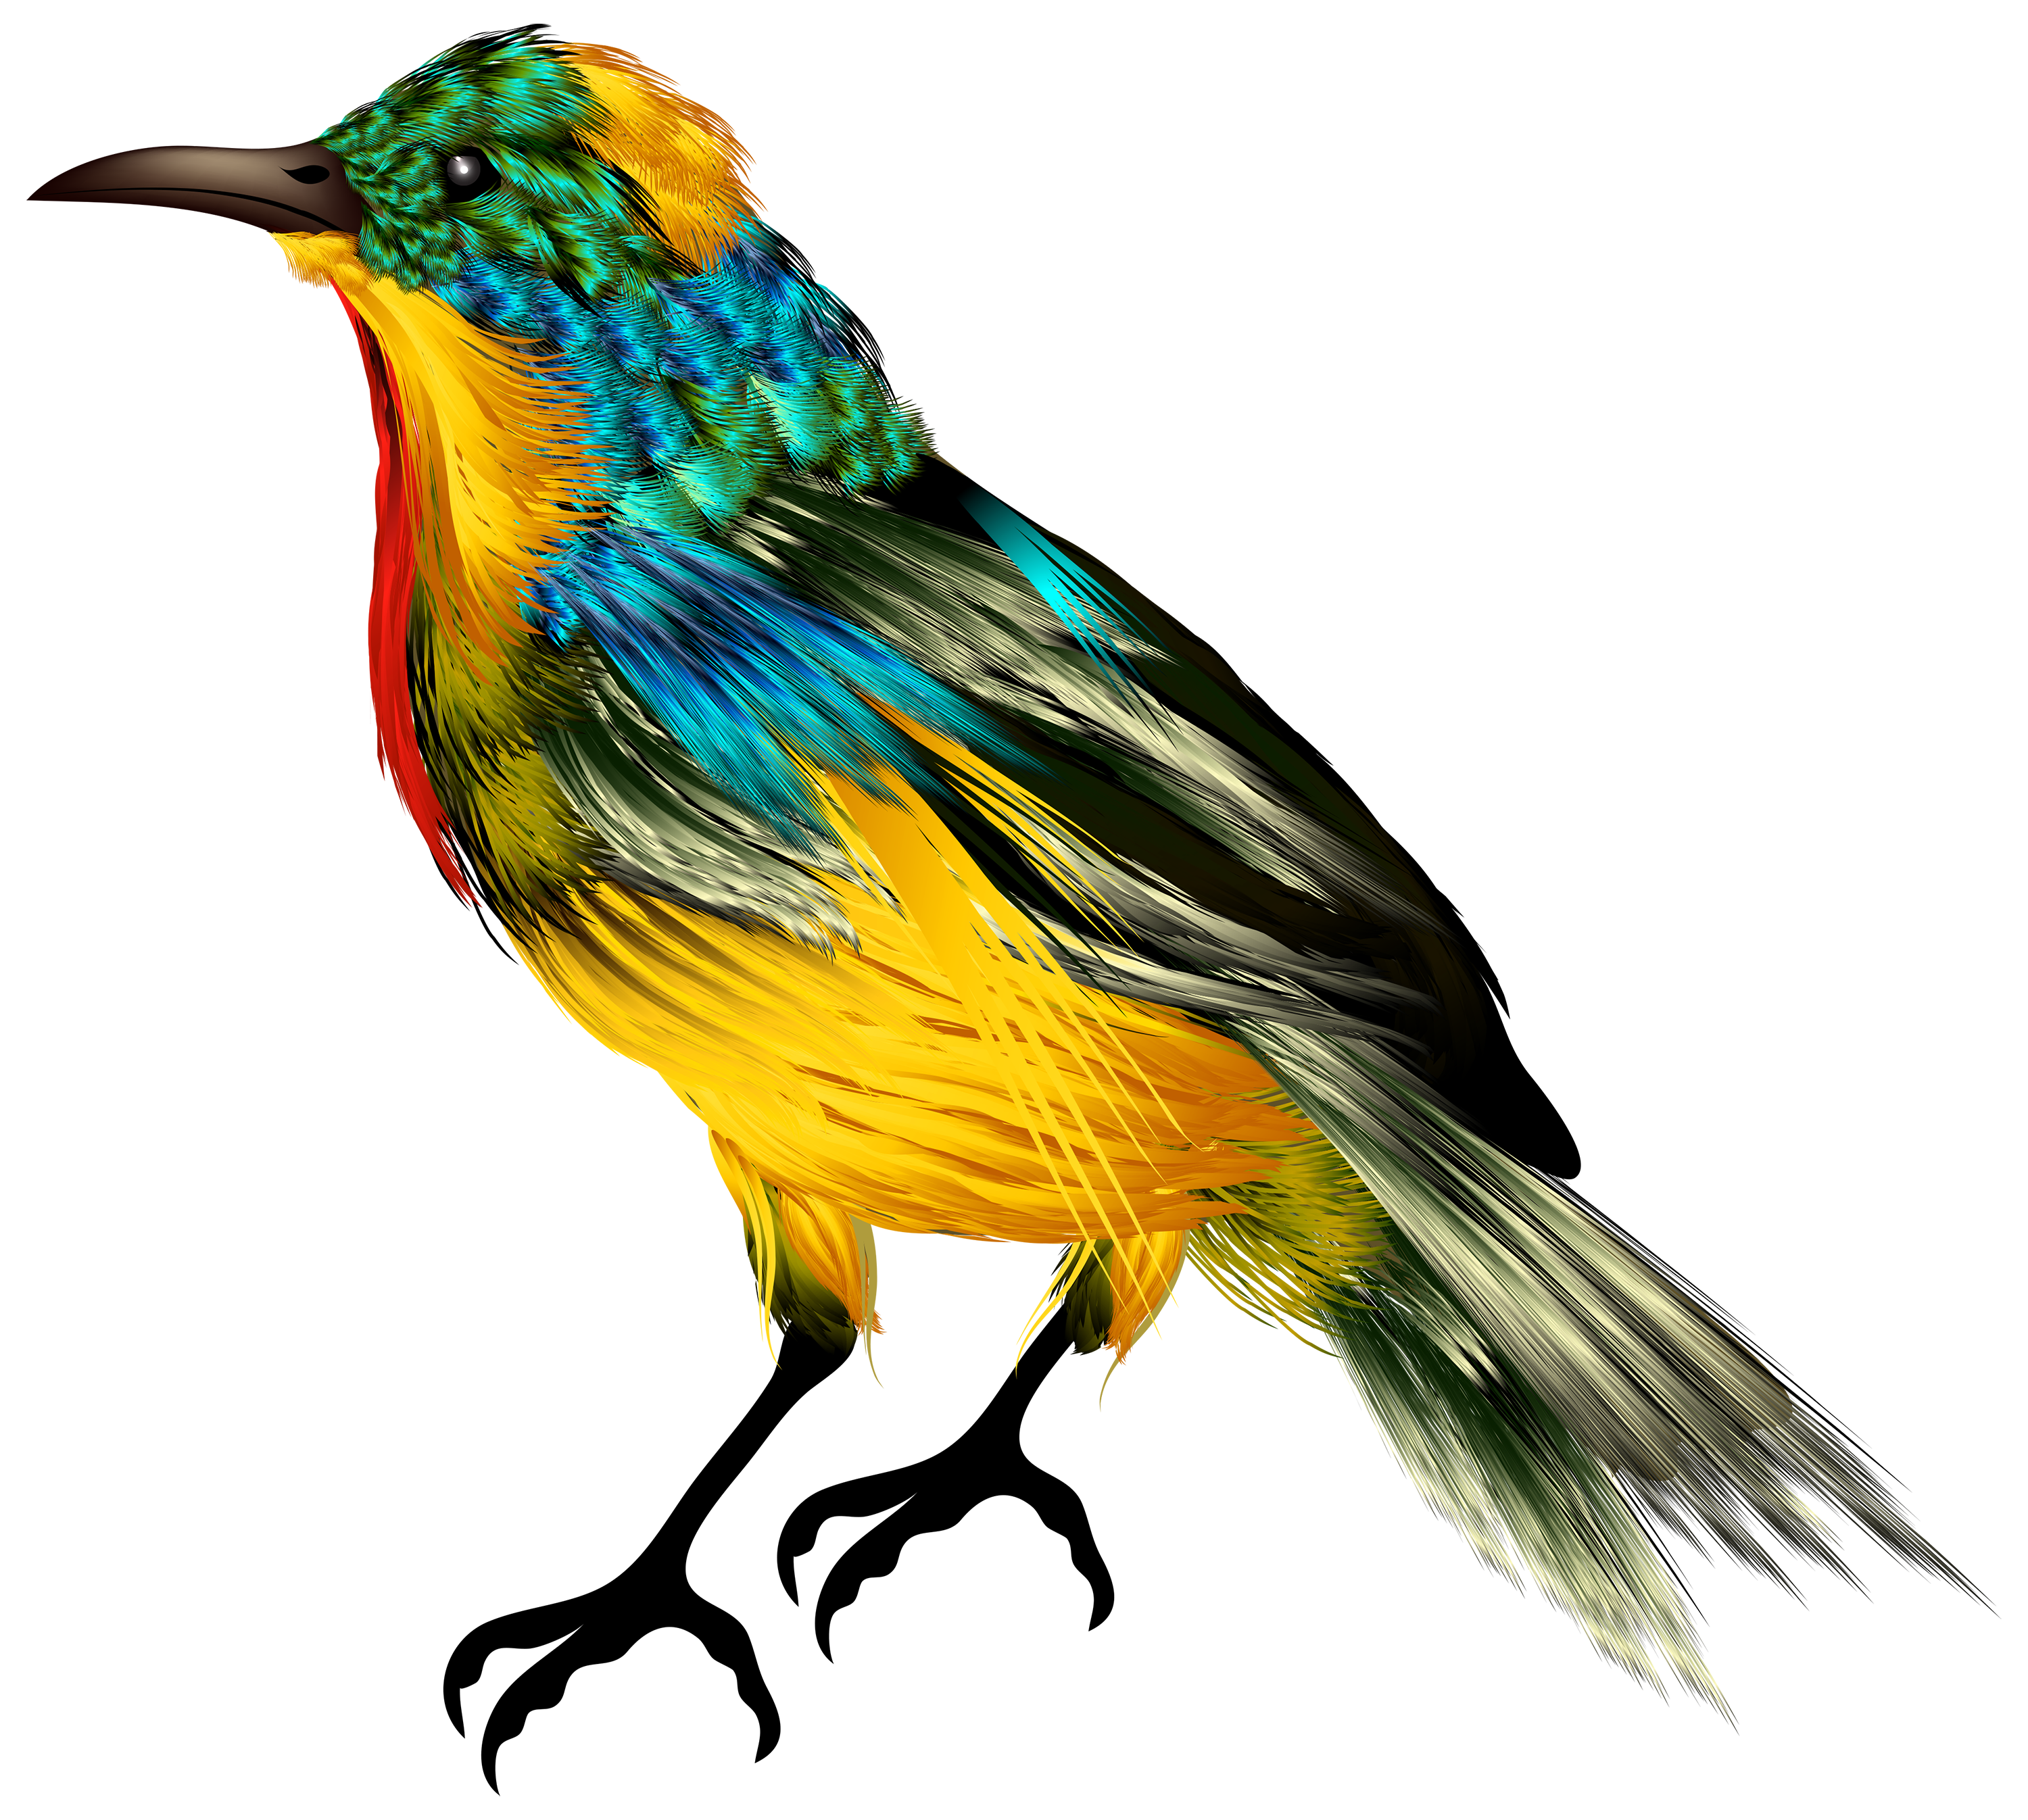 Birds png. Colourful bird clipart best vector freeuse stock